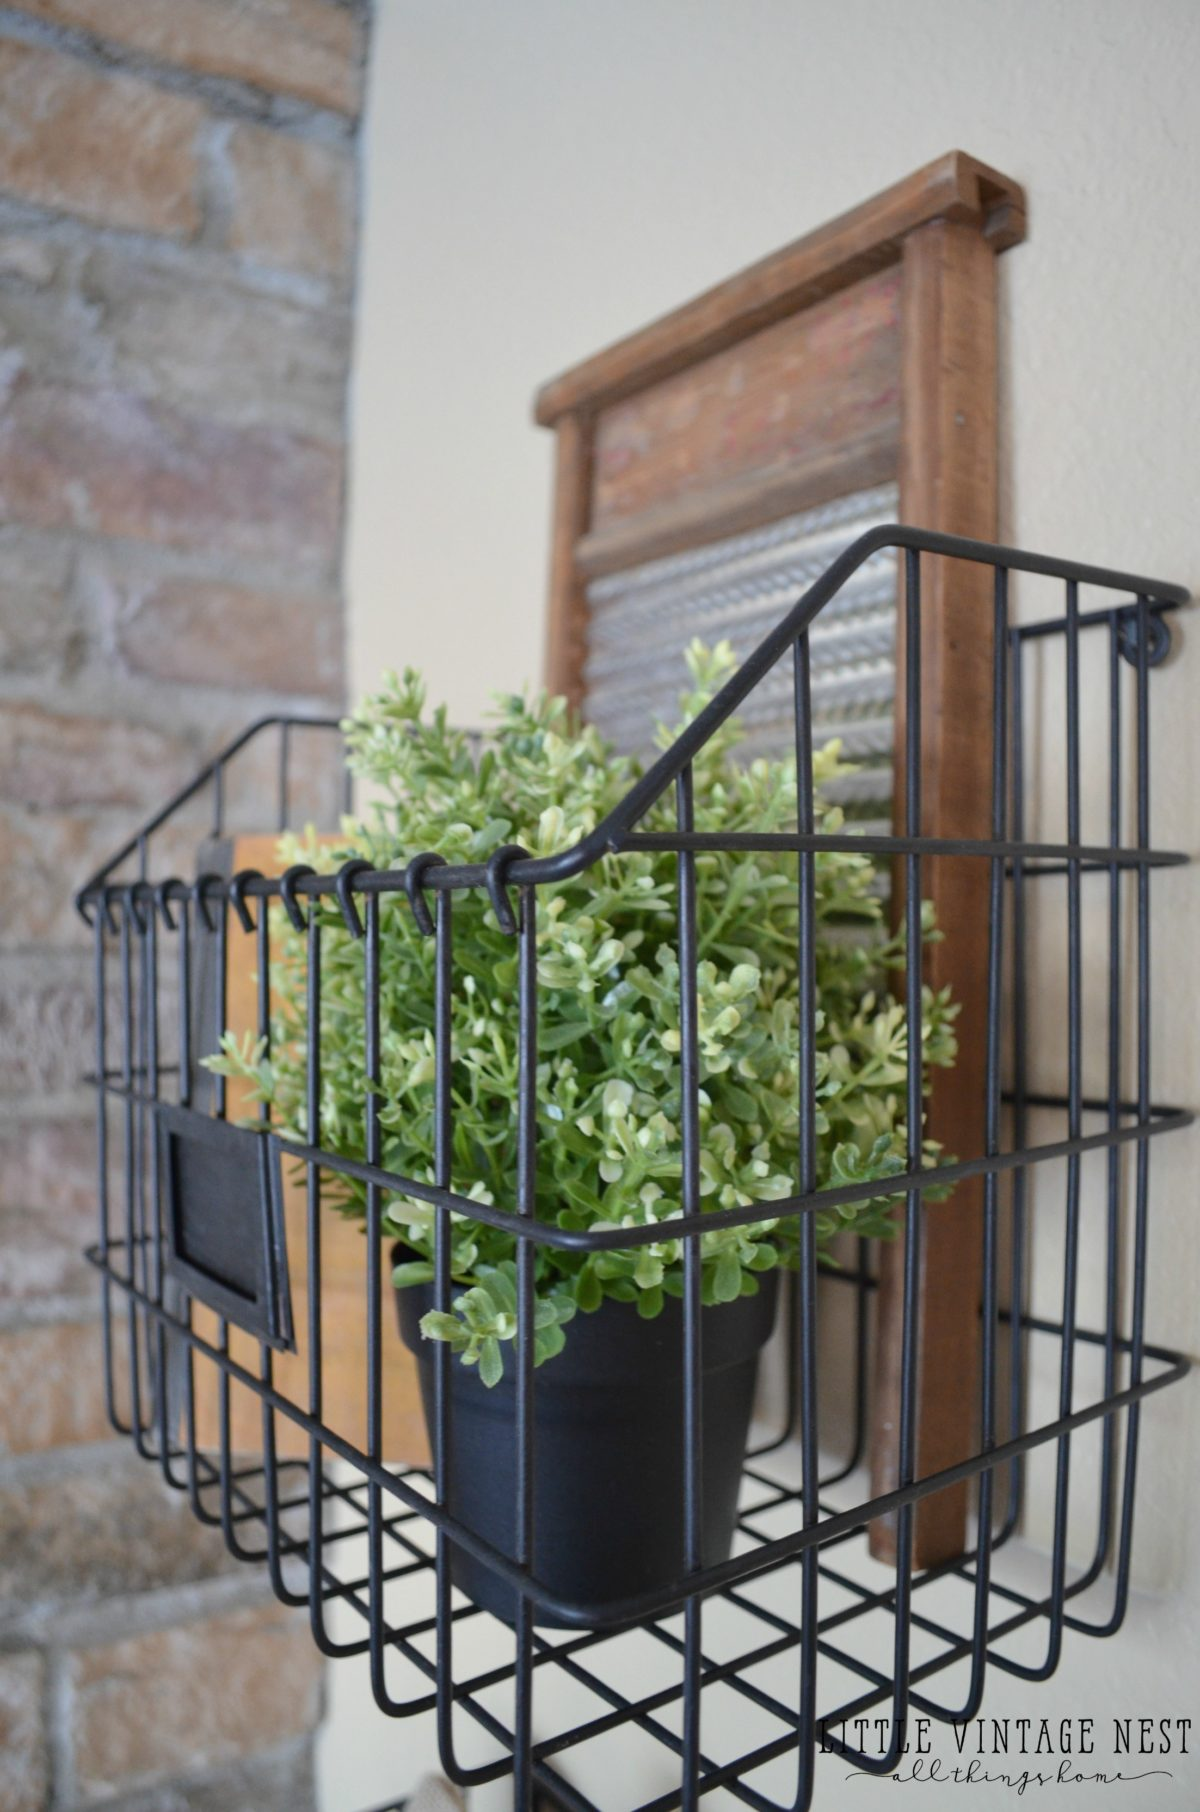 Fabulous Farmhouse Style: Decorating with Wire Baskets - Little Vintage Nest AT78